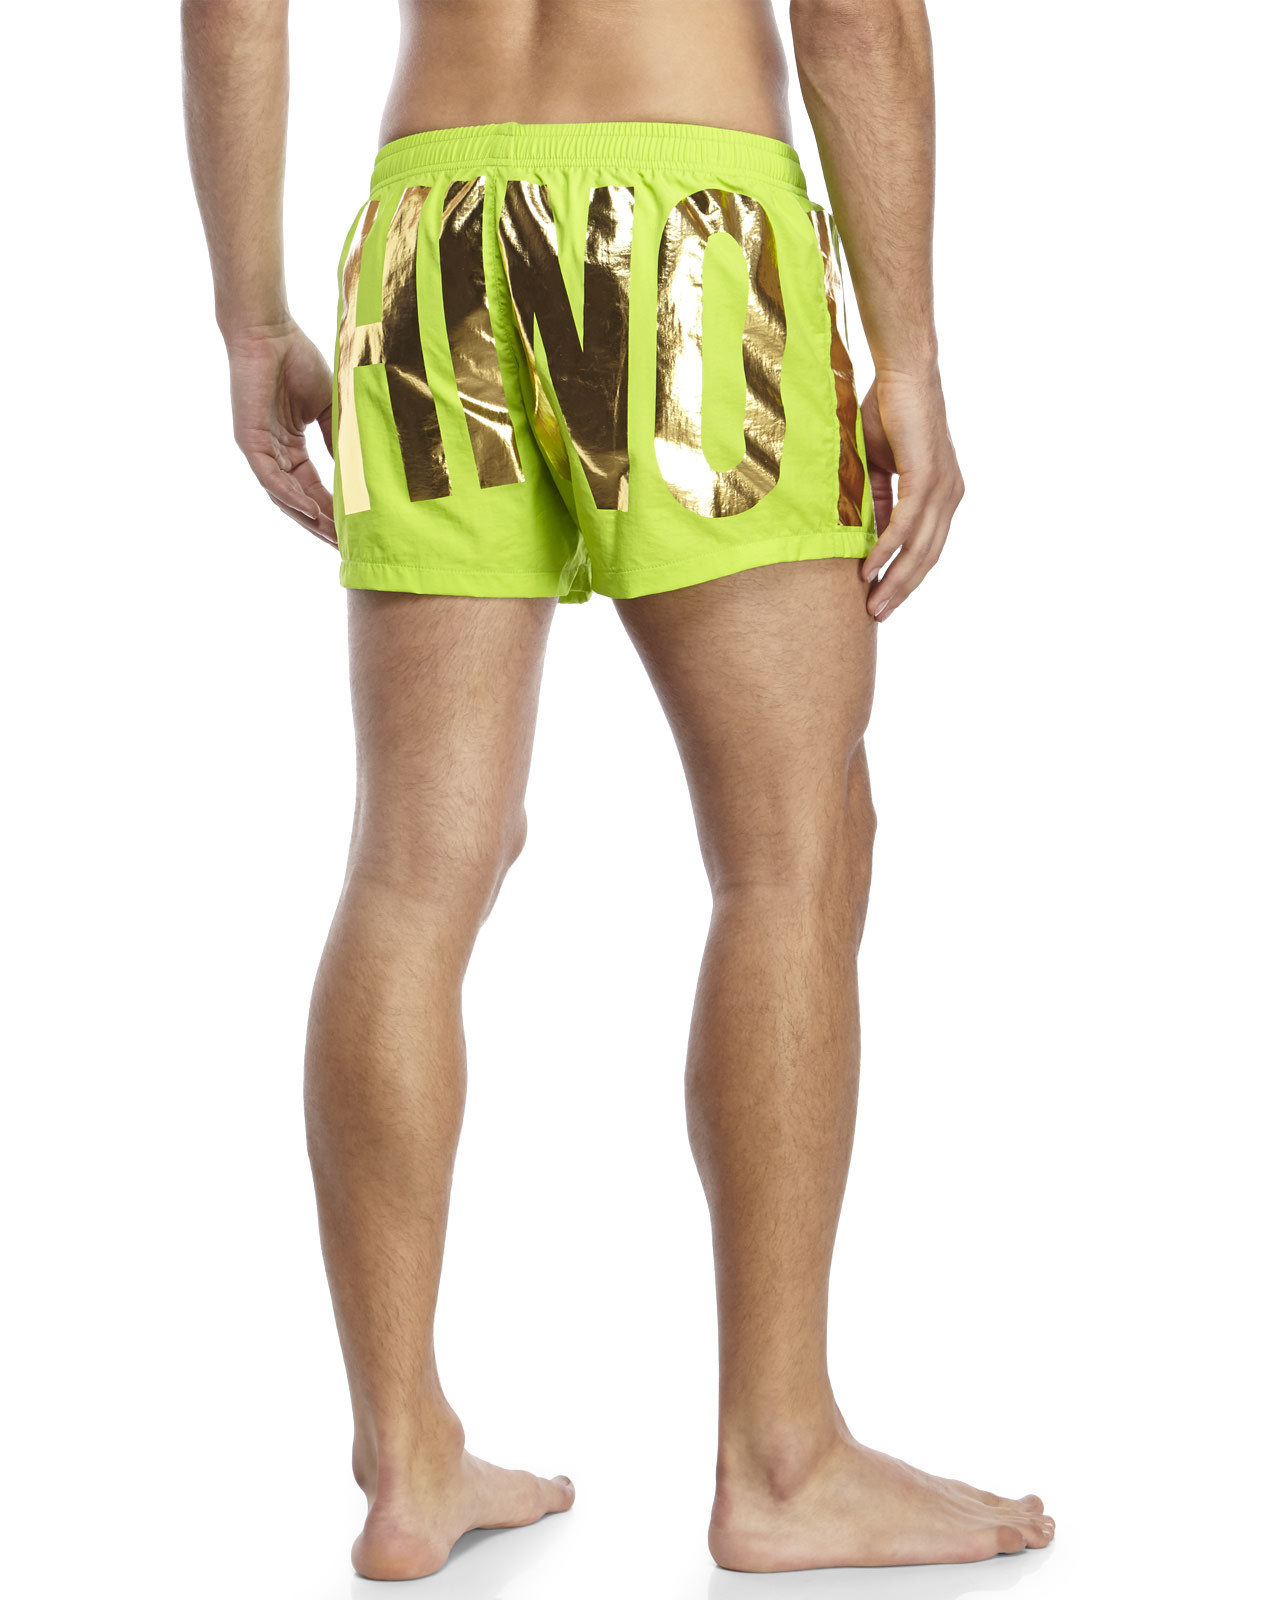 SWIMWEAR - Swimming trunks Bullish Clearance Visa Payment Wholesale Price Online Get To Buy 4AqMep3j0